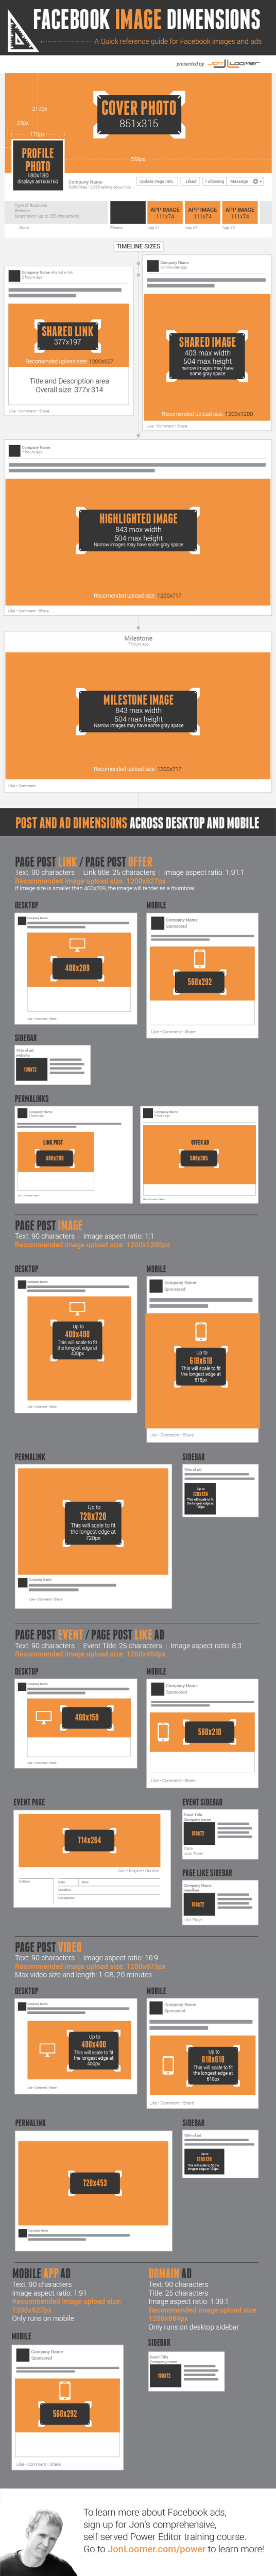 Facebook Image Dimensions [Infographic]